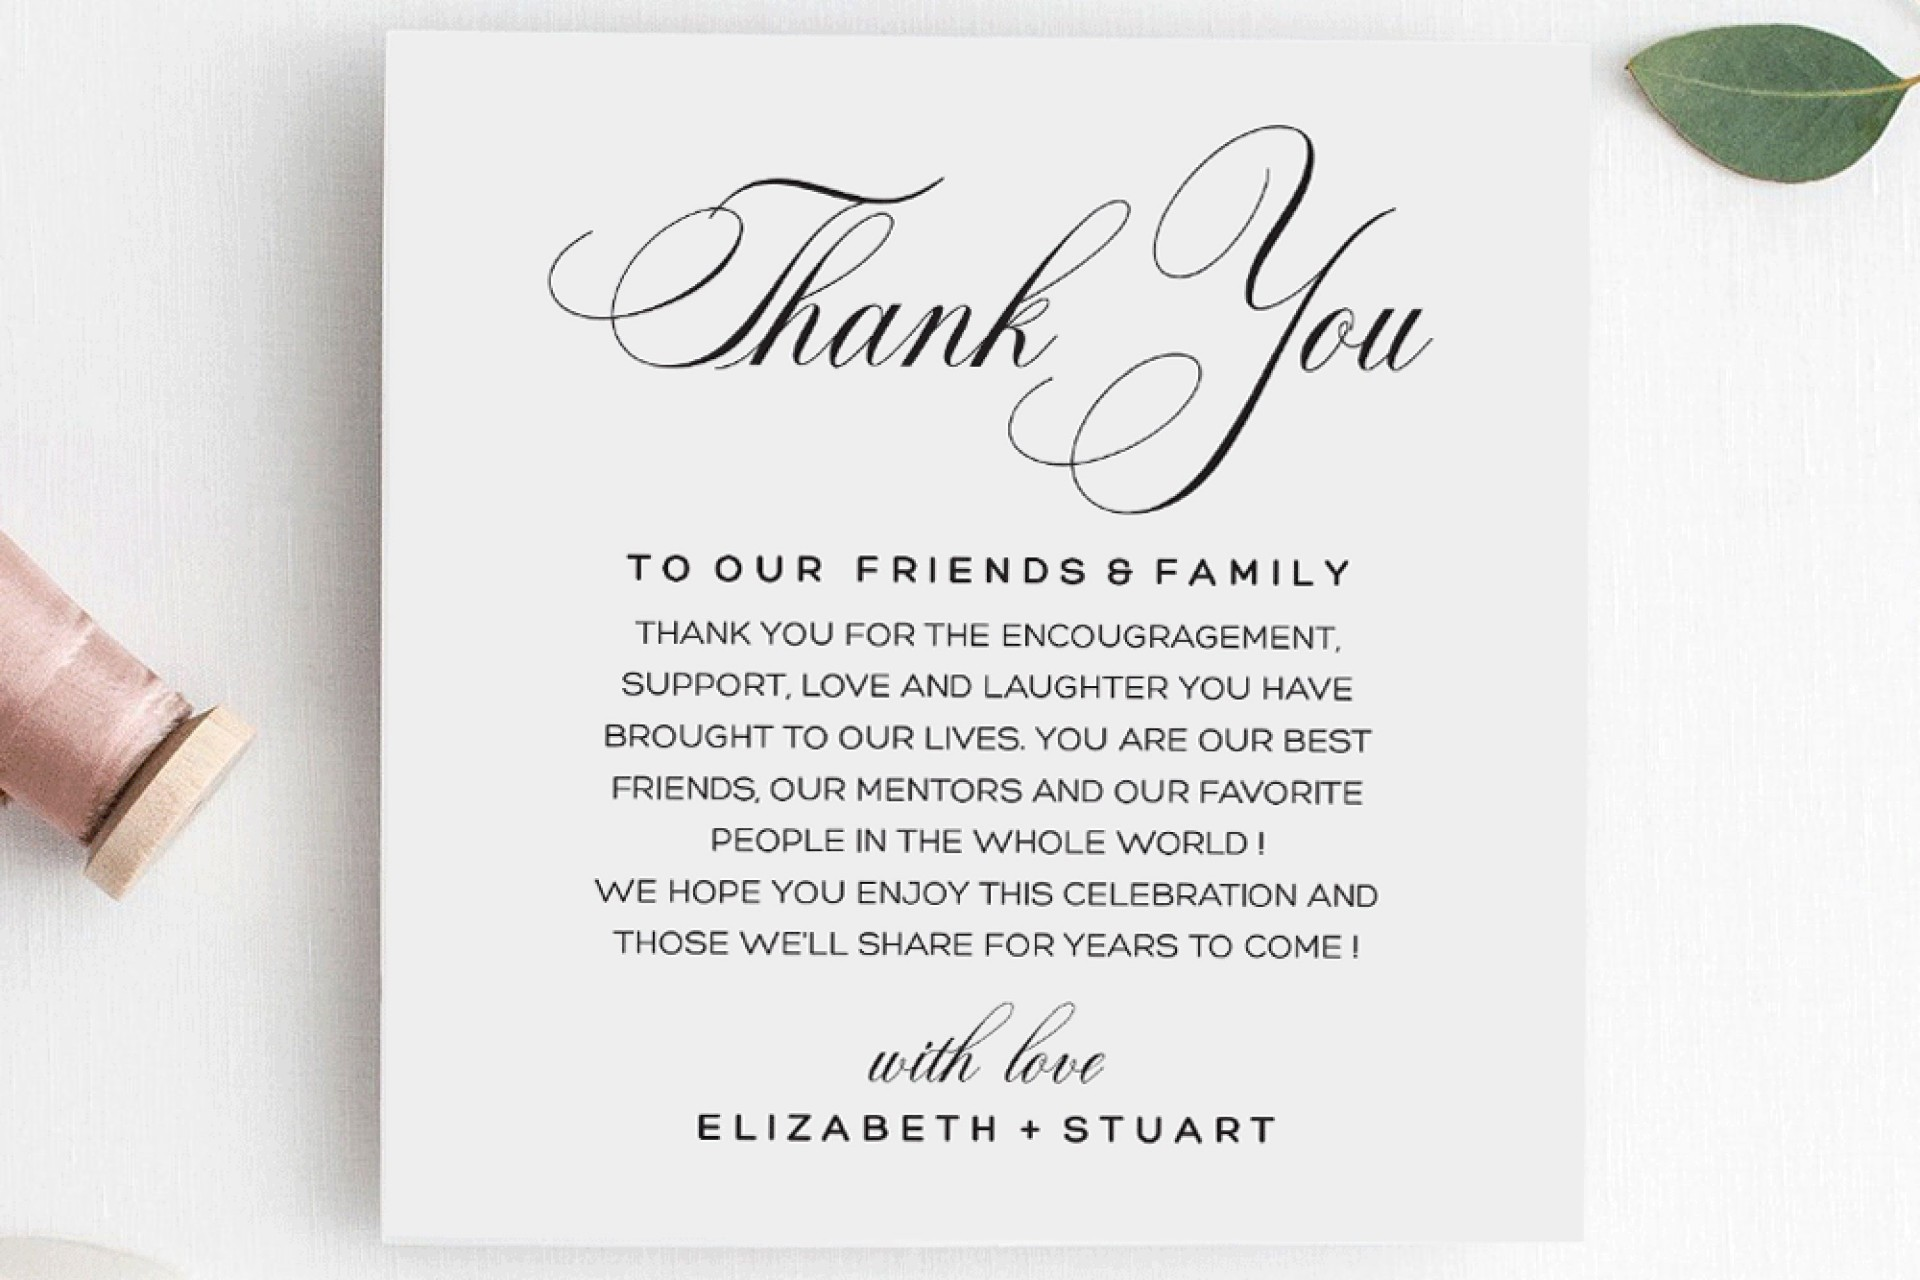 000 Breathtaking Wedding Thank You Note Template Photo  Templates Shower Card Etsy Bridal Format1920